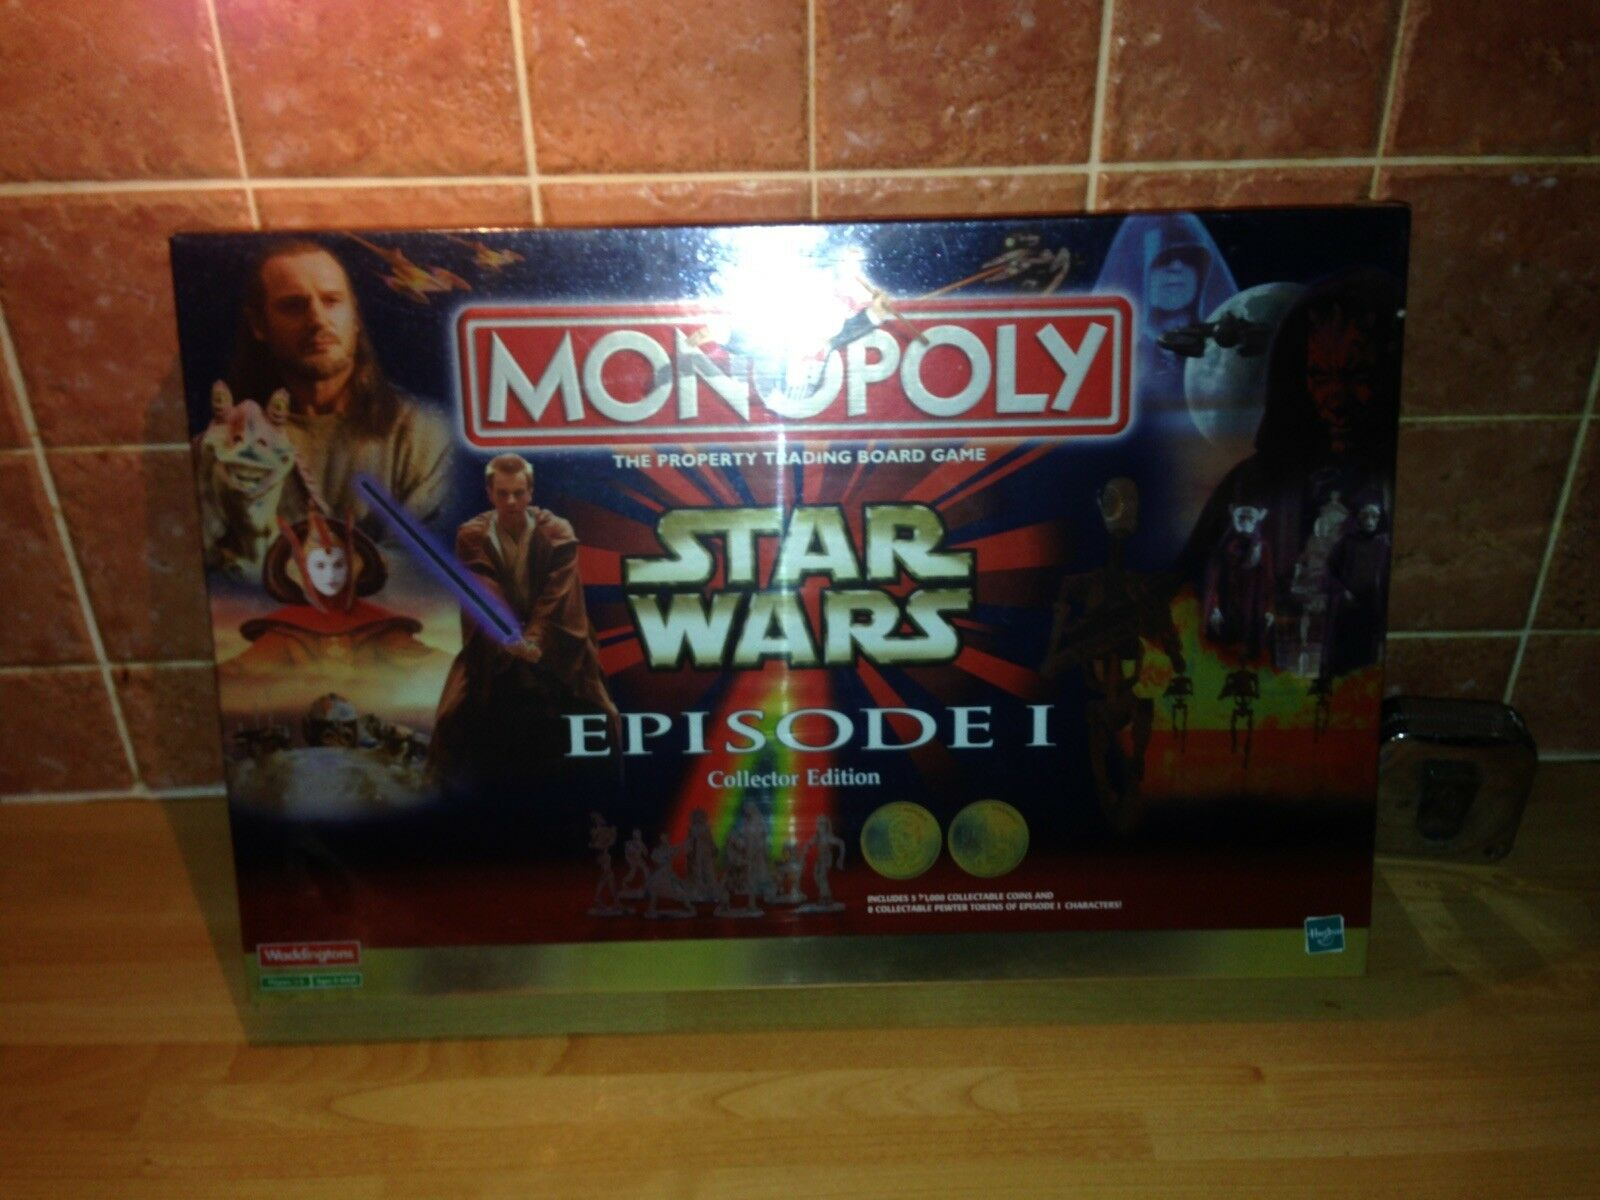 1 Episode Wars Star Monopoly Collectors Seald New Edition